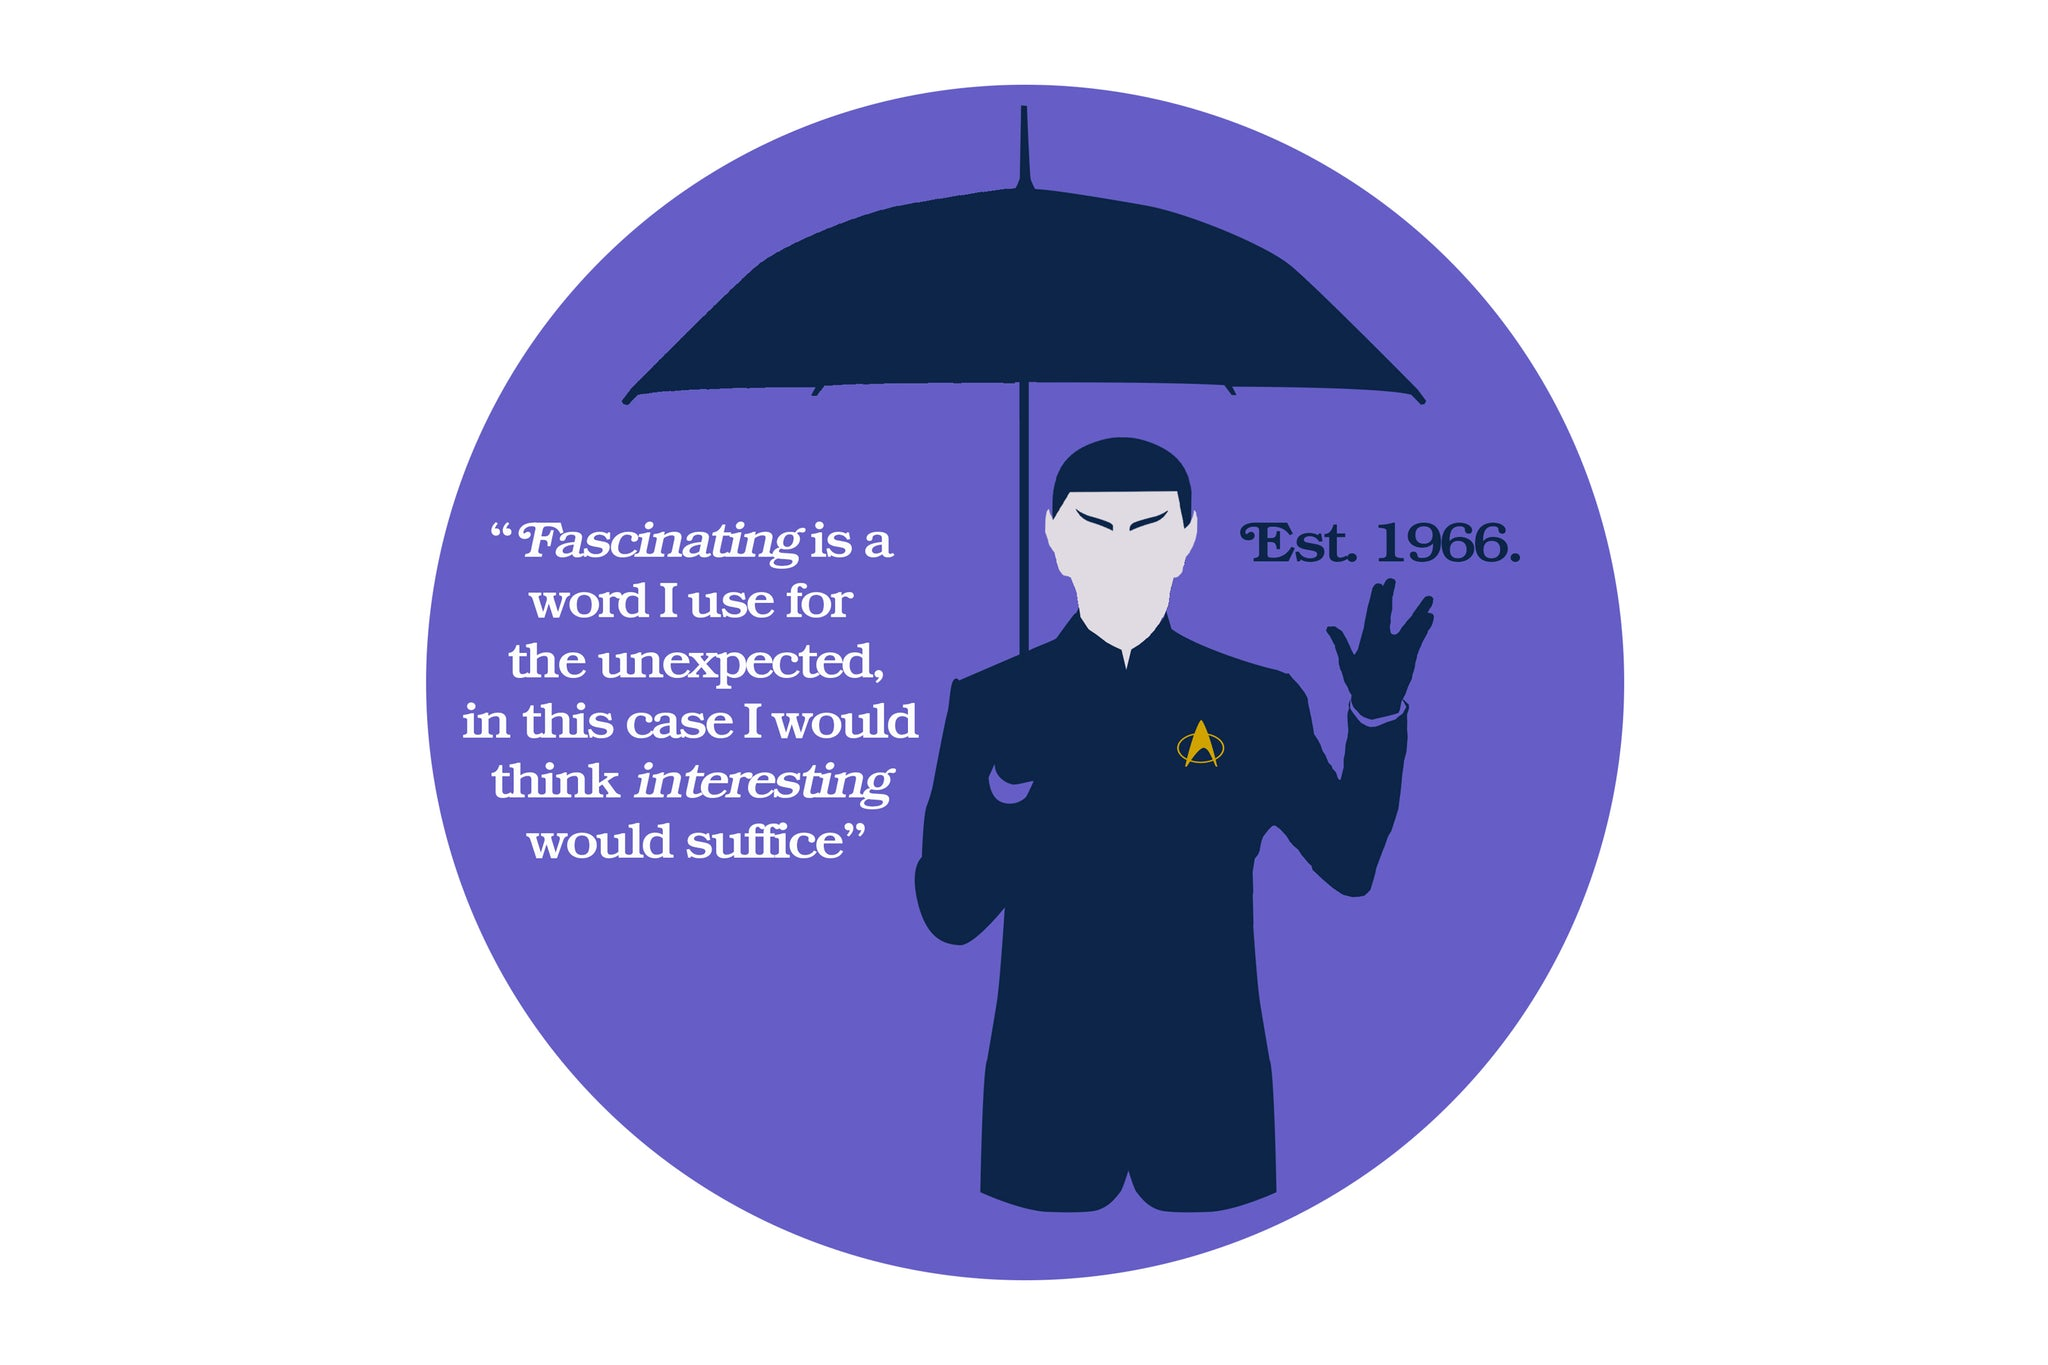 """Illustration of a man with pointed ears holding an umbrella. Quote"""" Fascinating is a word I use for the unexpected, in this case I would think interesting would suffice."""" Established 1966."""